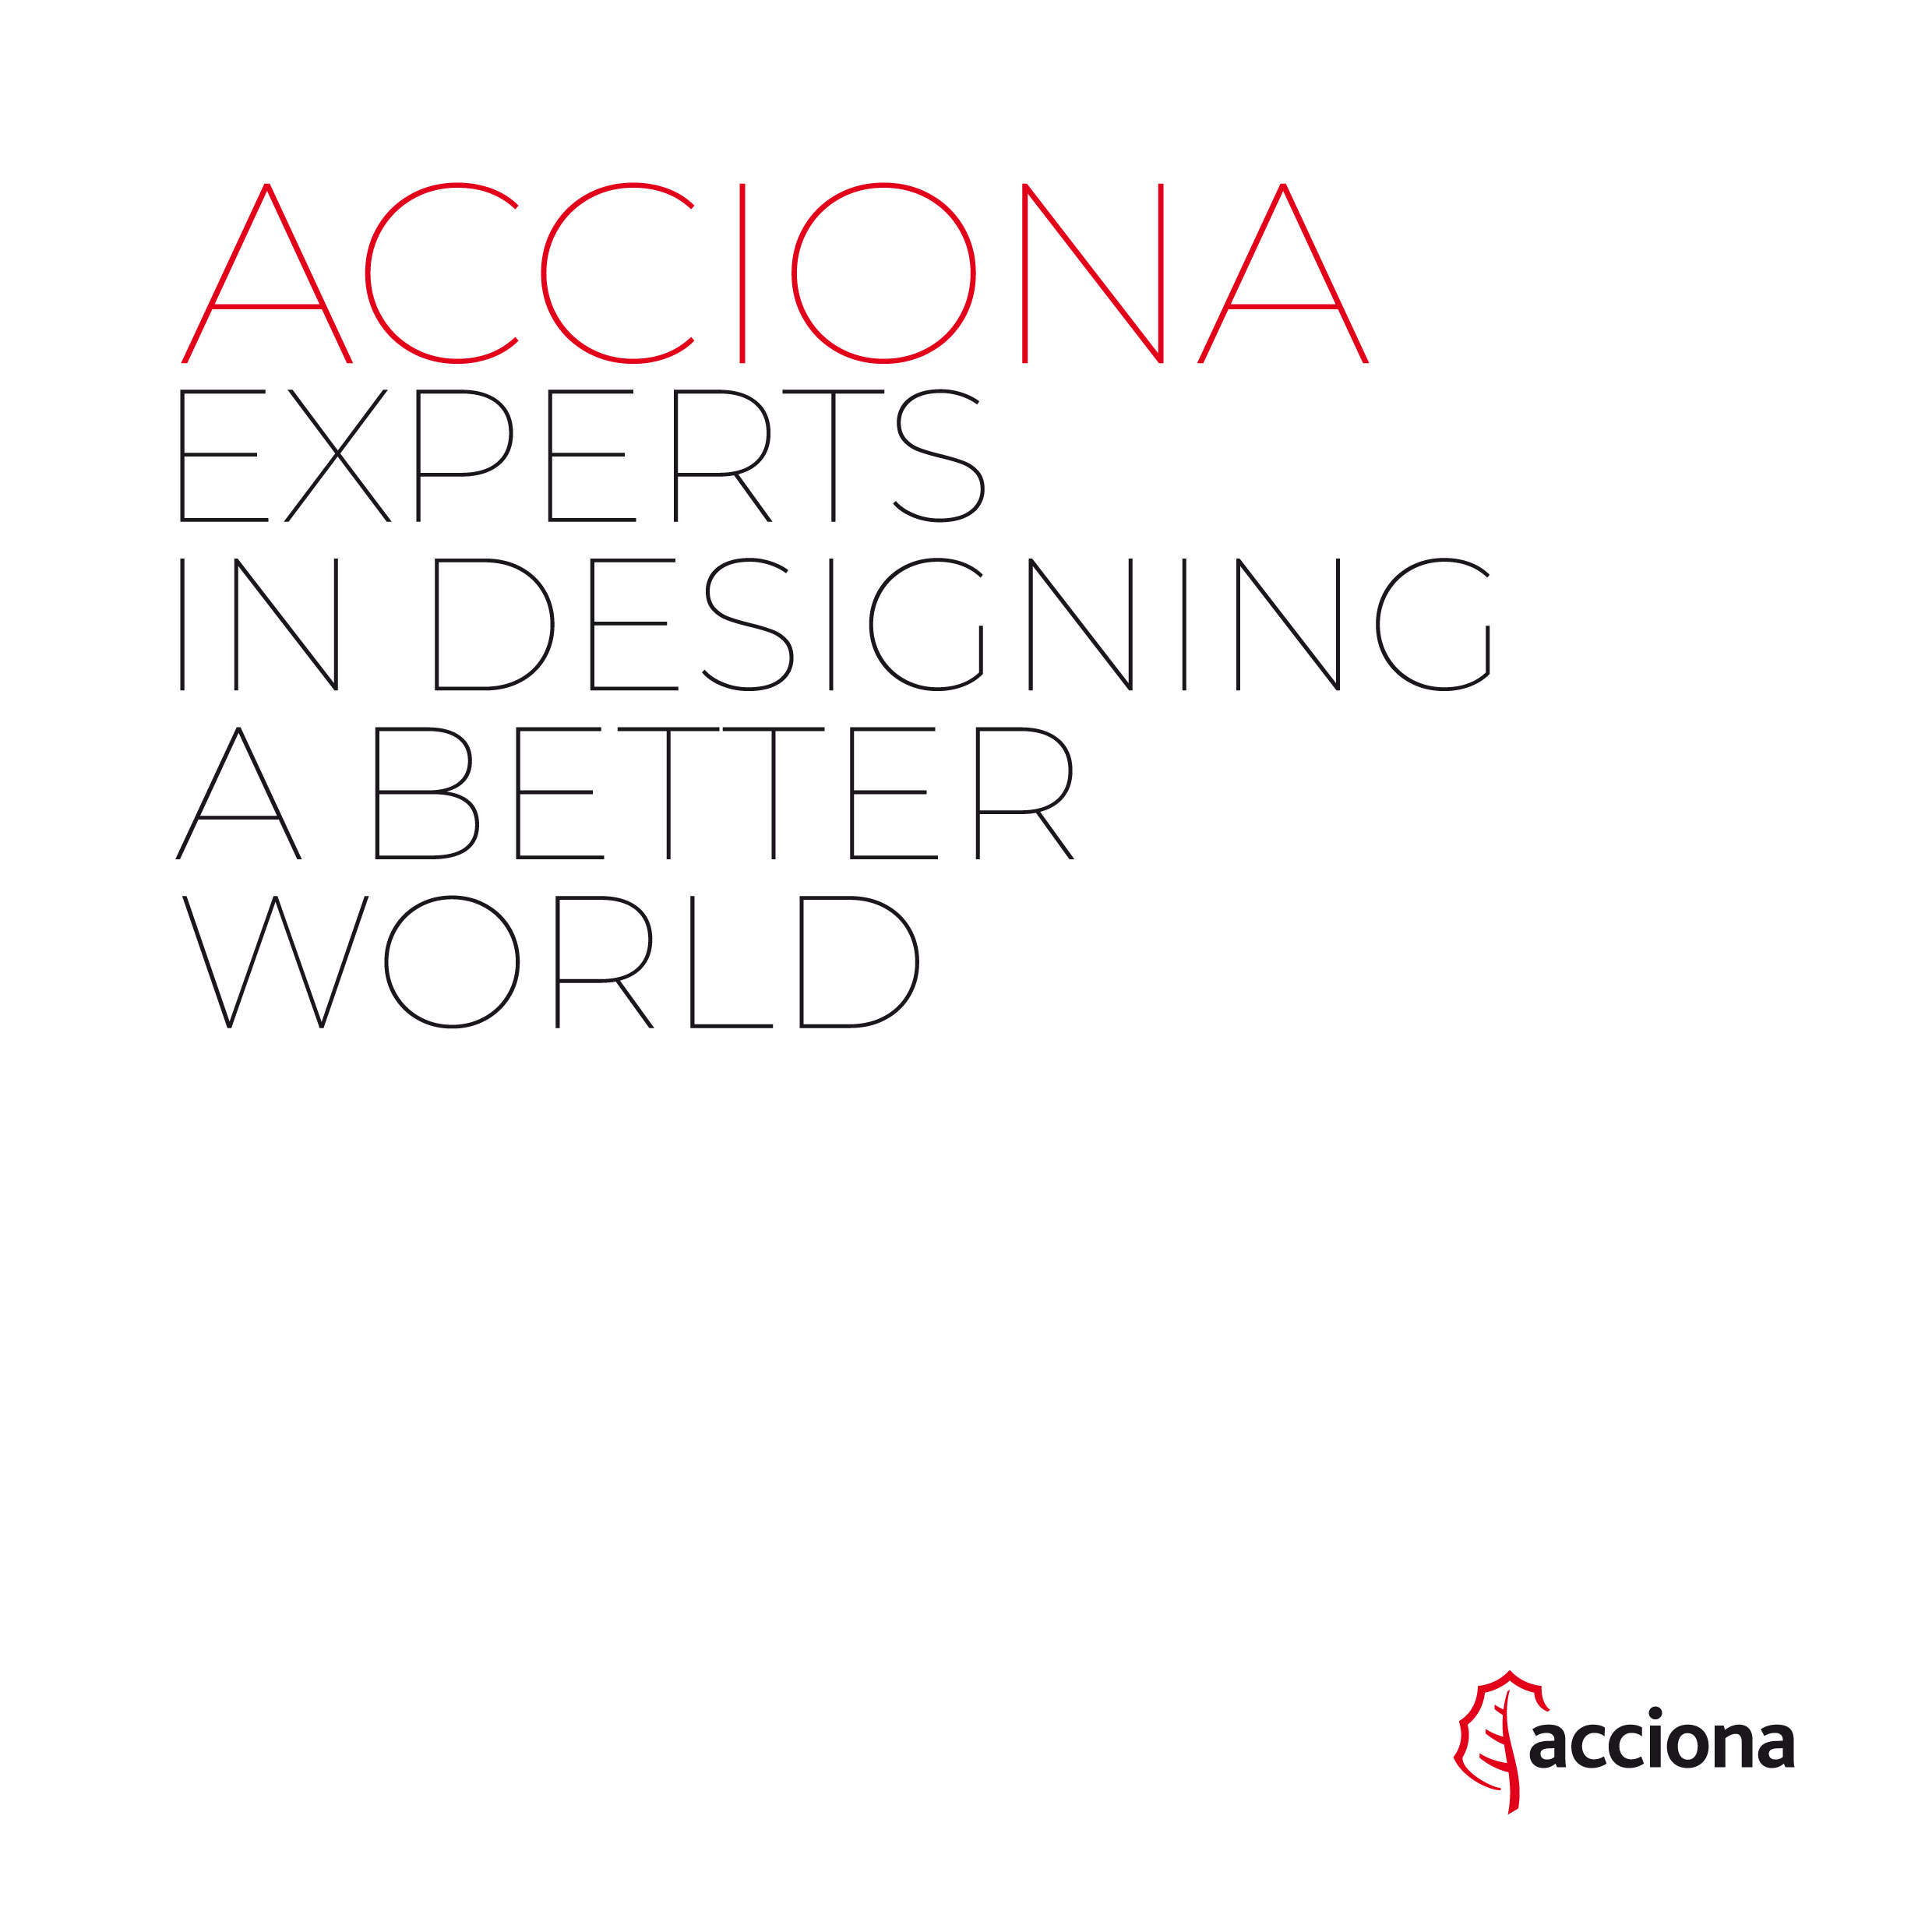 ACCIONA. Experts in designing a better planet